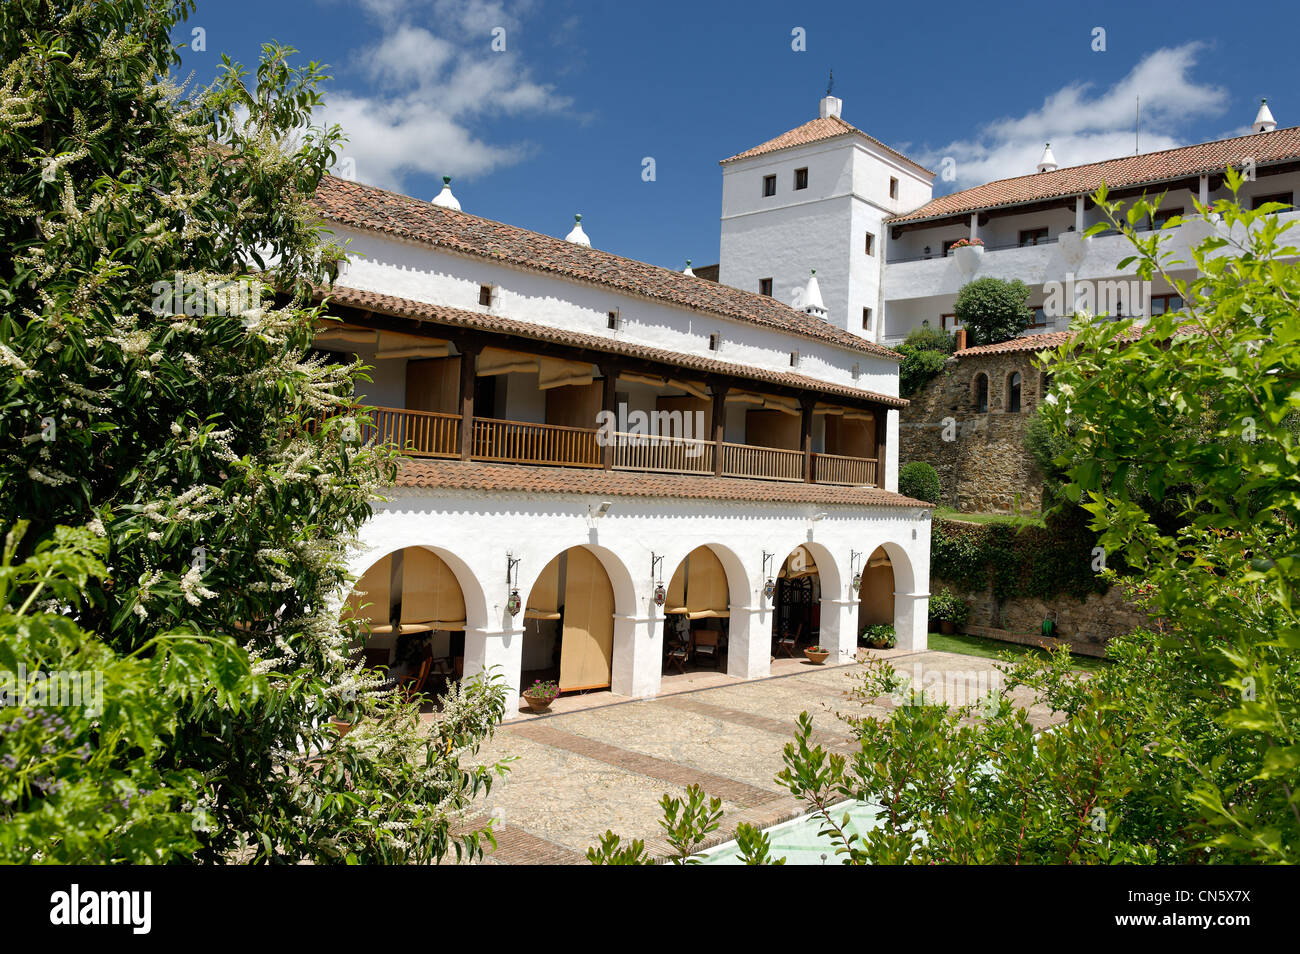 Spain, Extremadura, Guadalupe, Parador of Tourism, the former palace of the Marquis de la Romana Écouter - Stock Image